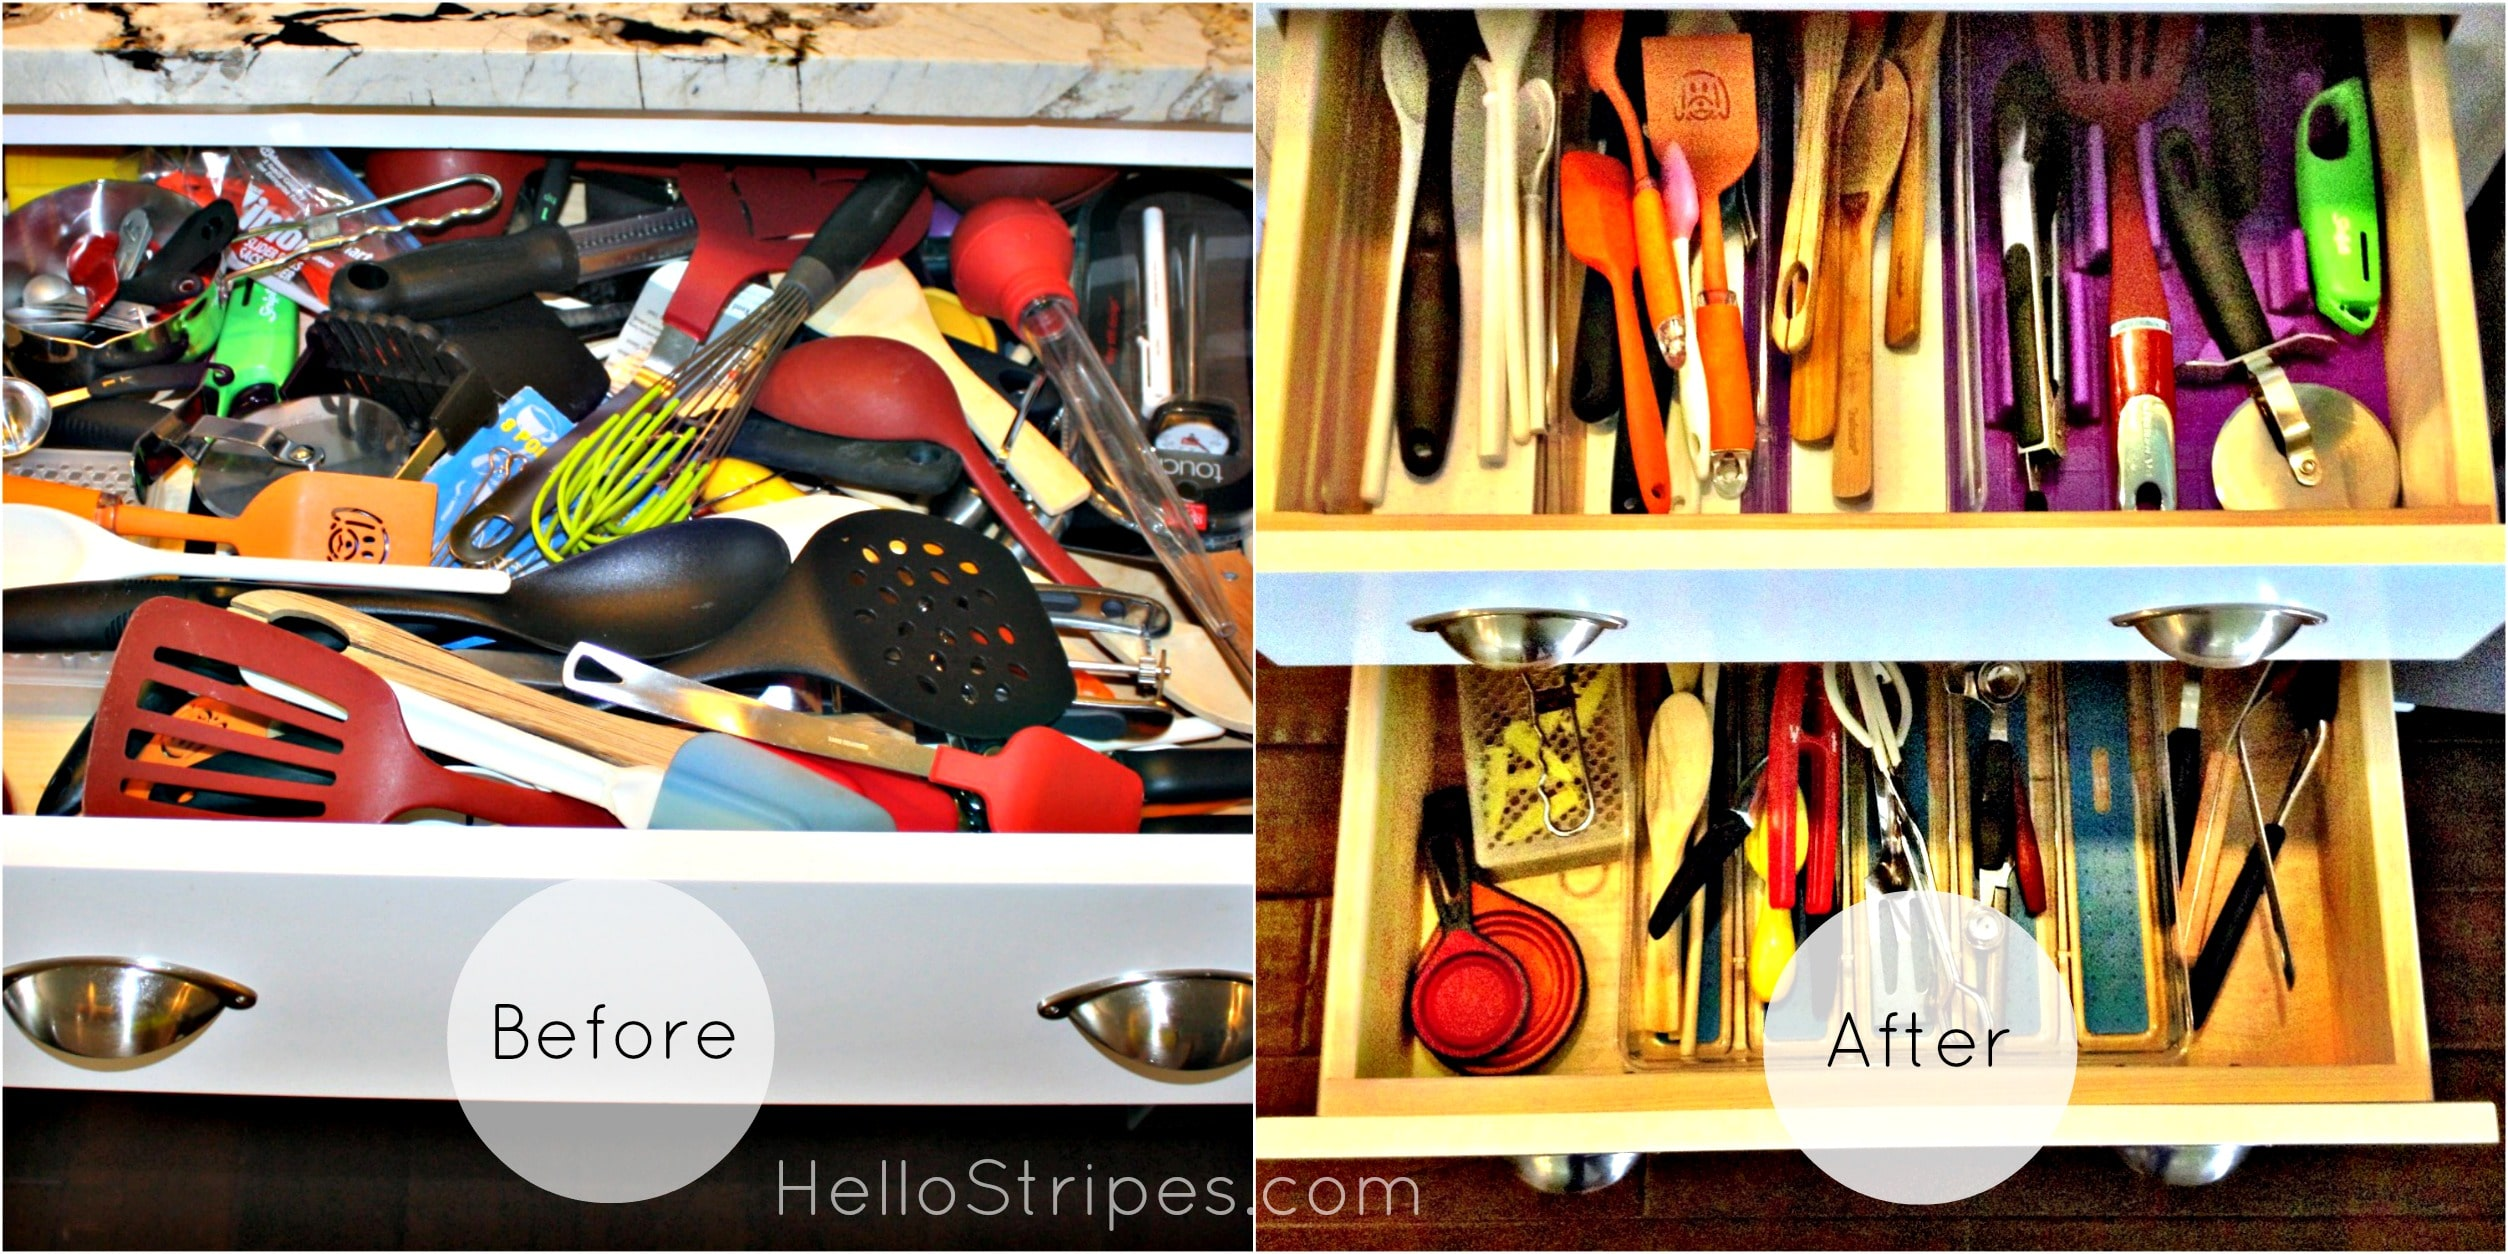 Organizing the Kitchen {Before & After Photos}